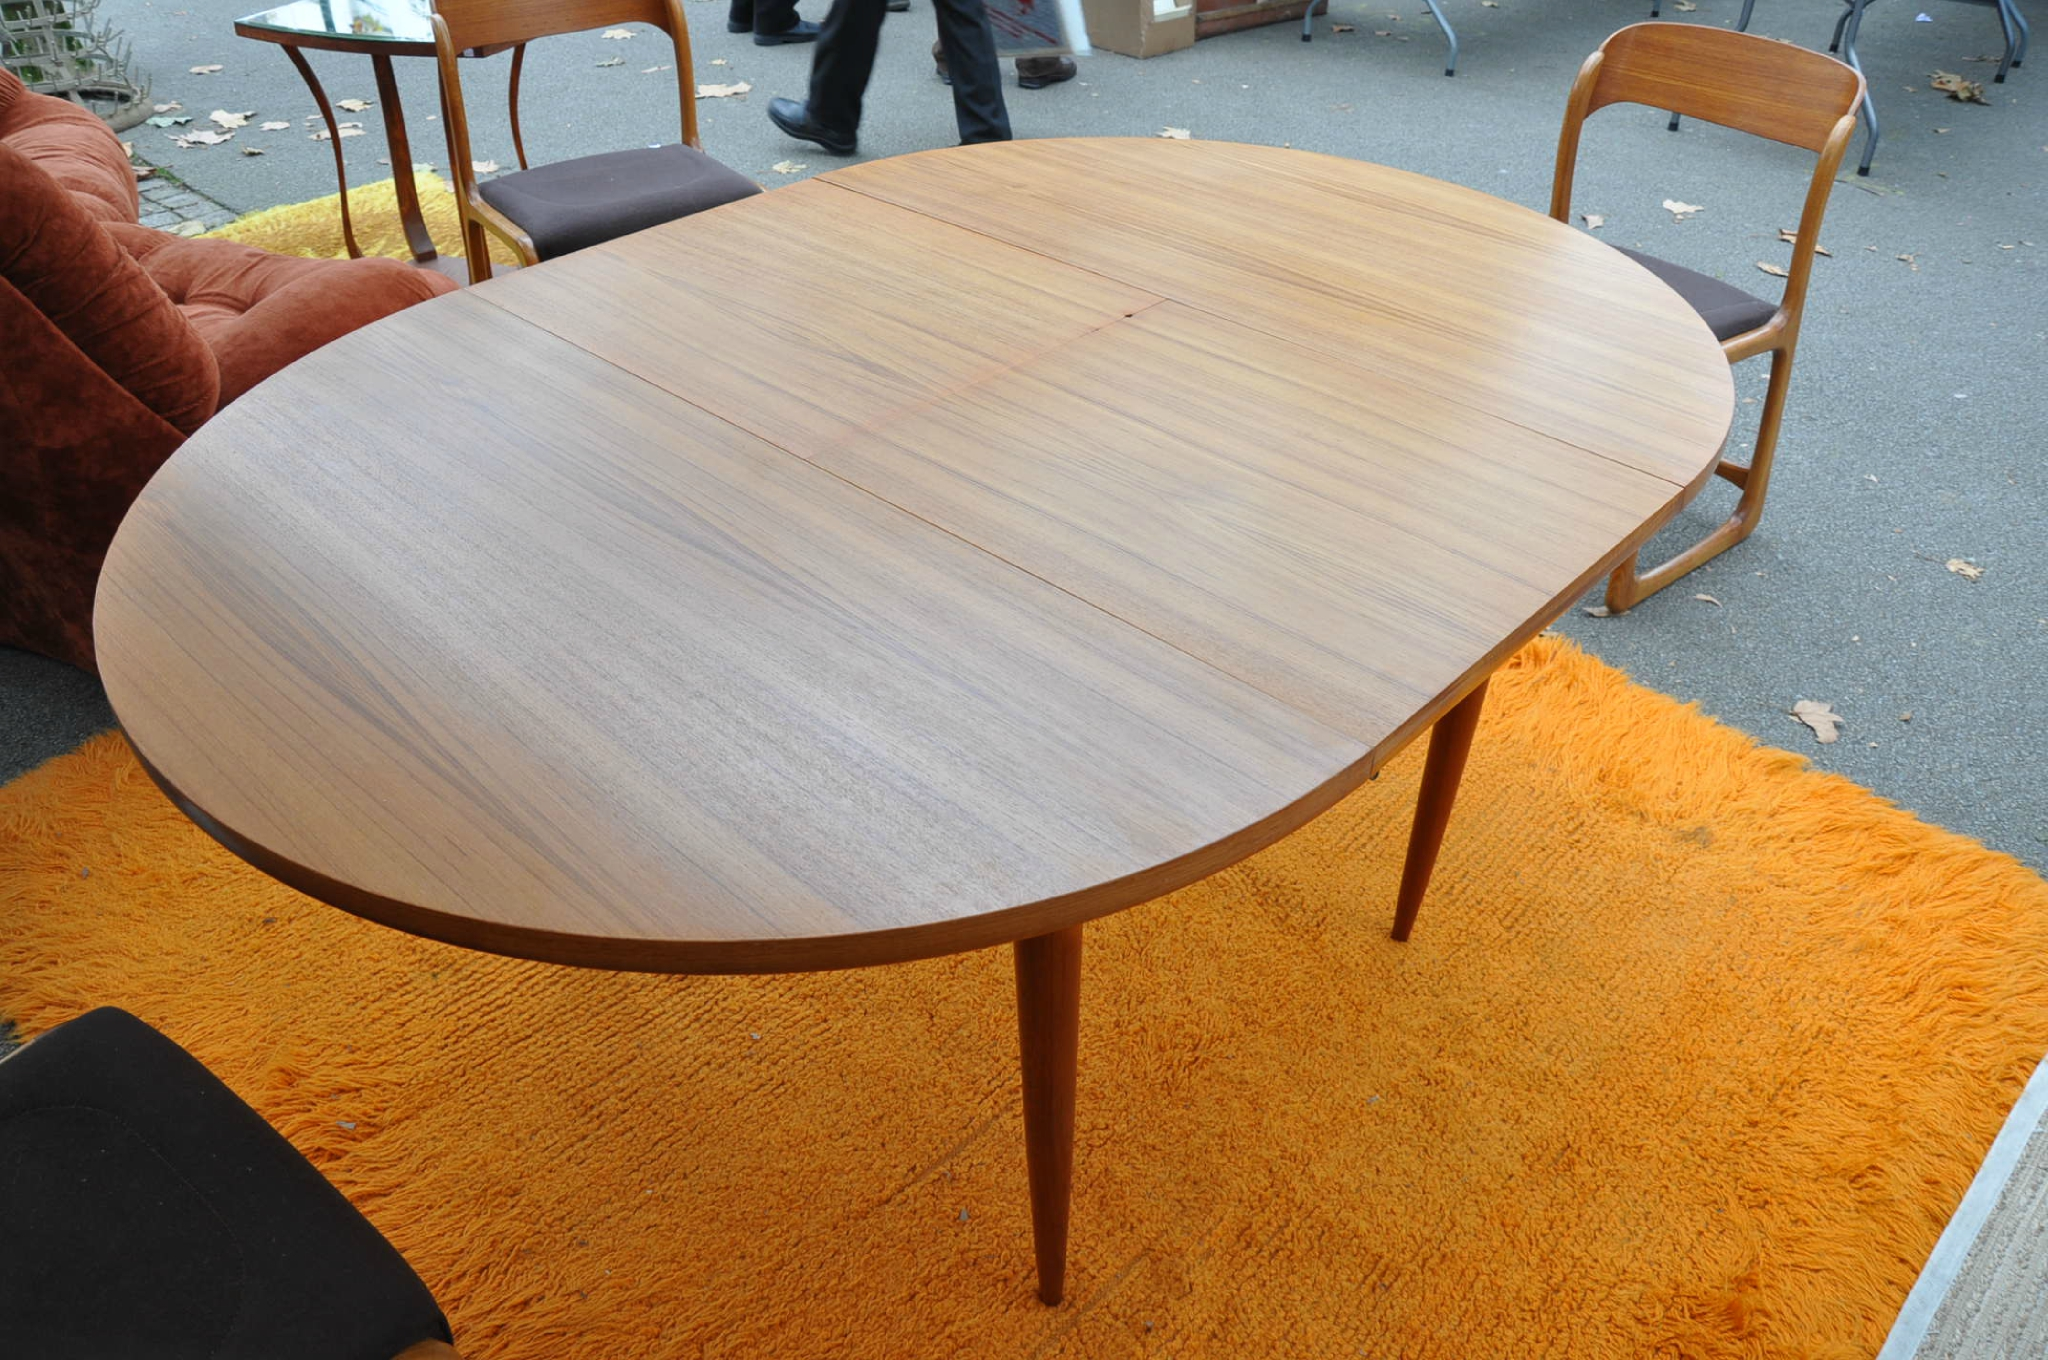 Table Ronde Scandinave Rallonge Table Ronde Teck De Type Scandinave Article Vendu Antiquités